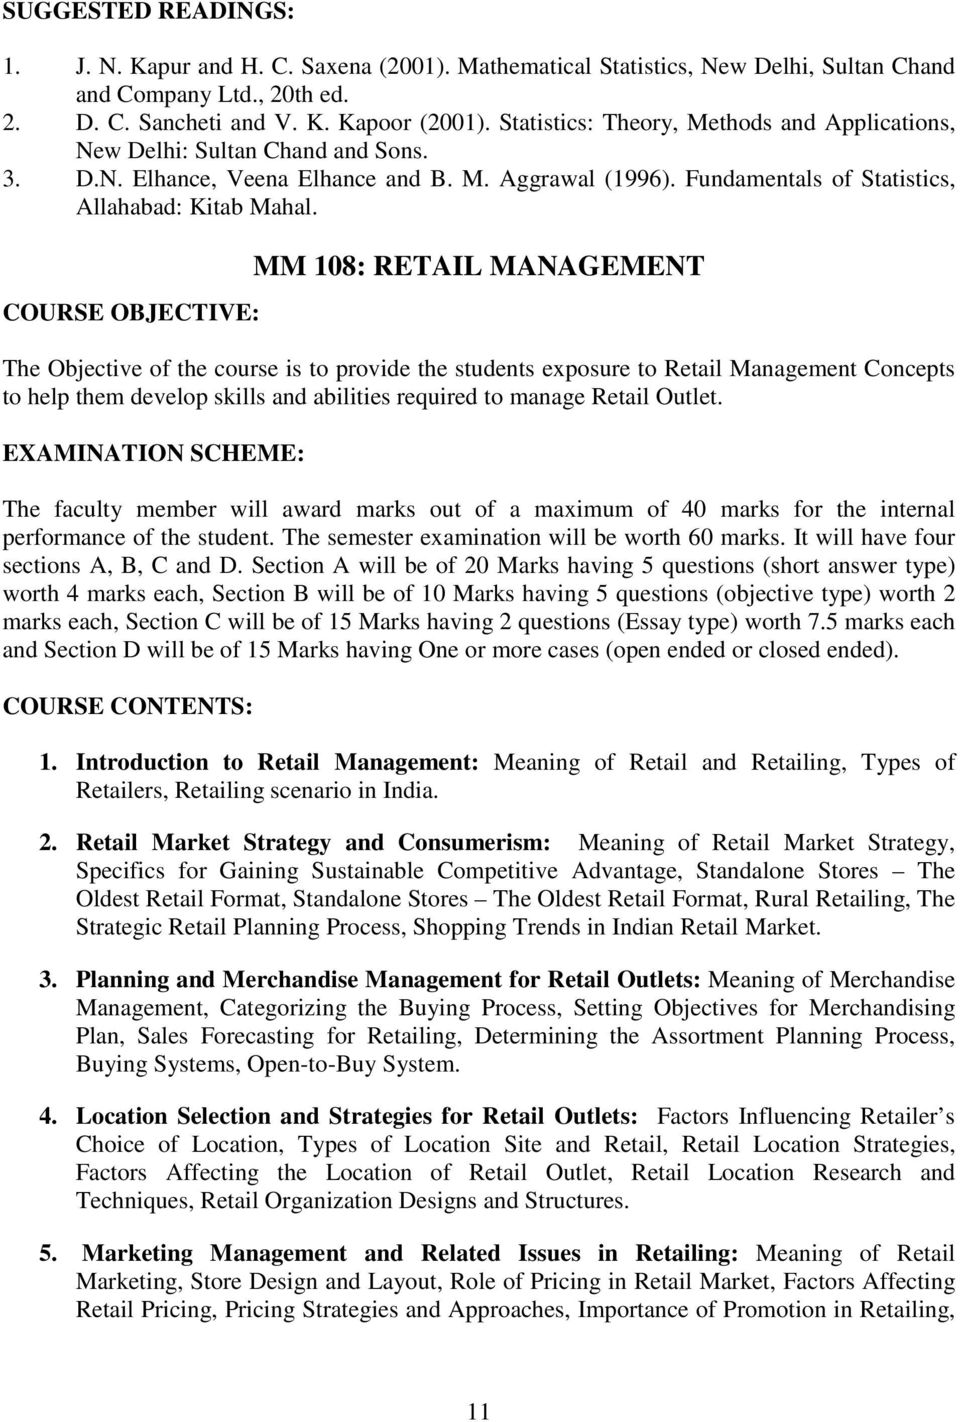 MM 108: RETAIL MANAGEMENT The Objective of the course is to provide the students exposure to Retail Management Concepts to help them develop skills and abilities required to manage Retail Outlet.